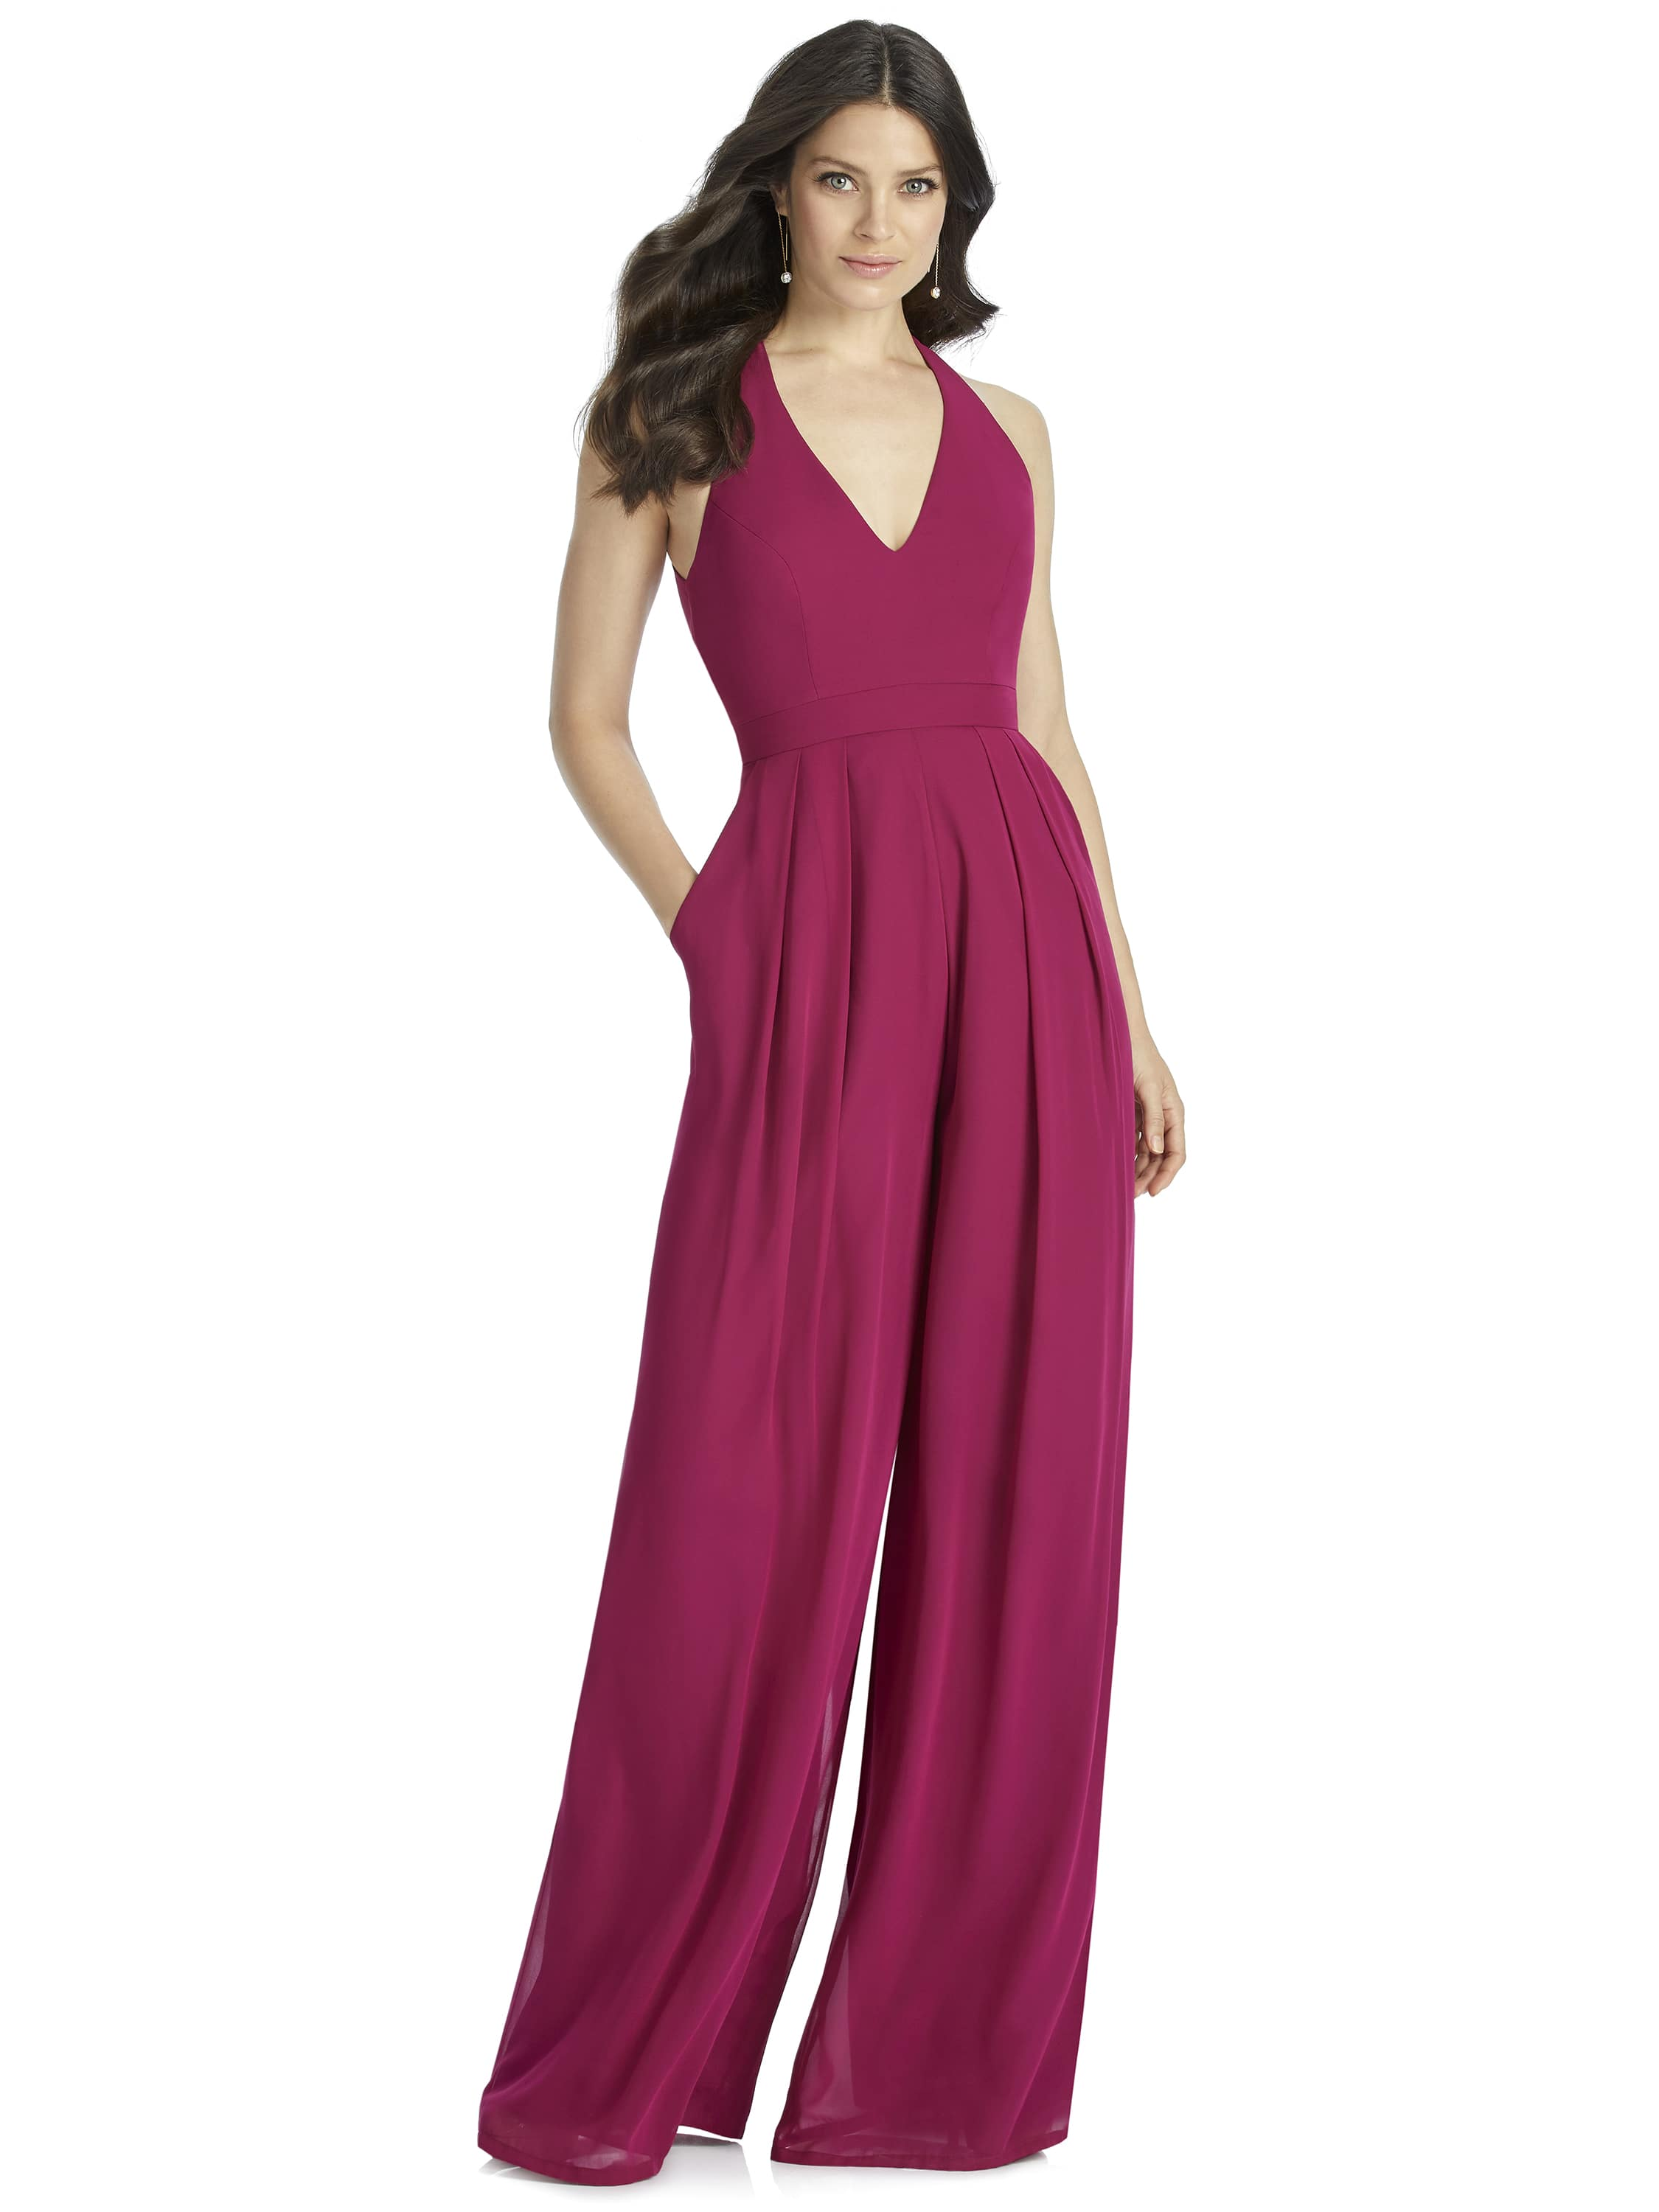 Halter jumpsuit in lux chiffon by Dessy Group style 3046